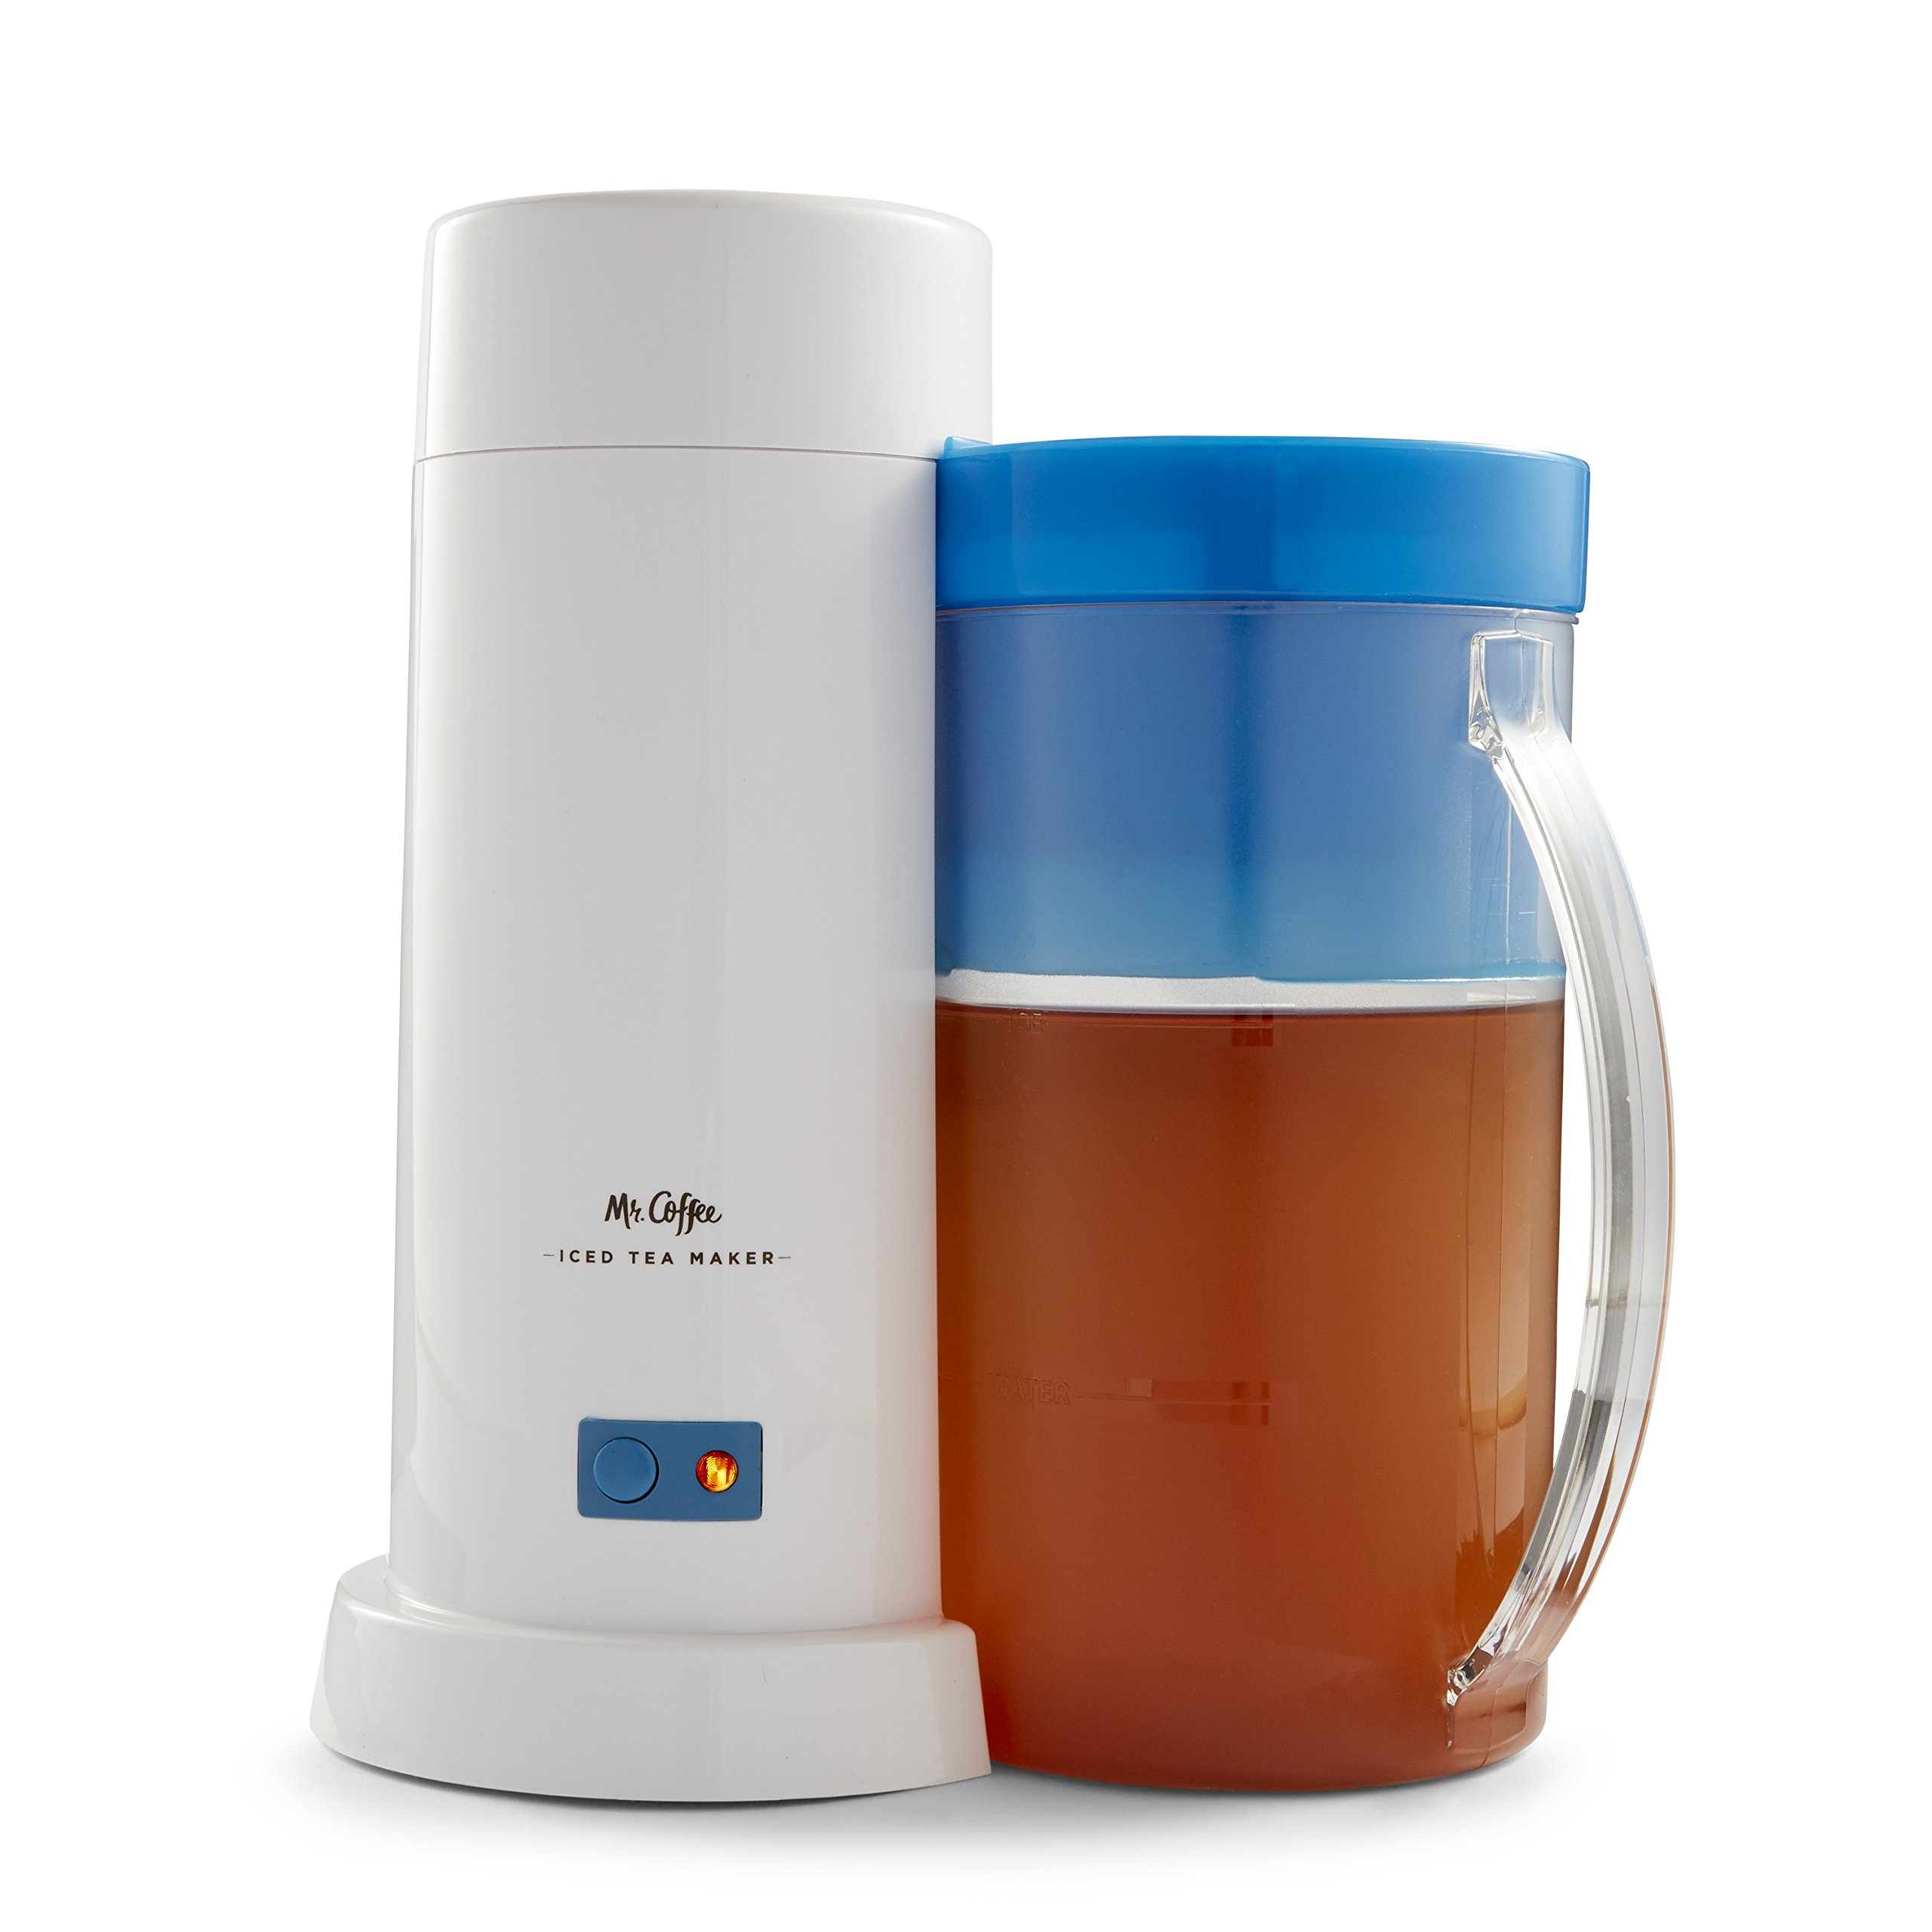 Mr. Coffee 2-Quart Iced Tea & Iced Coffee Maker, Blue by Mr. Coffee (Image #1)